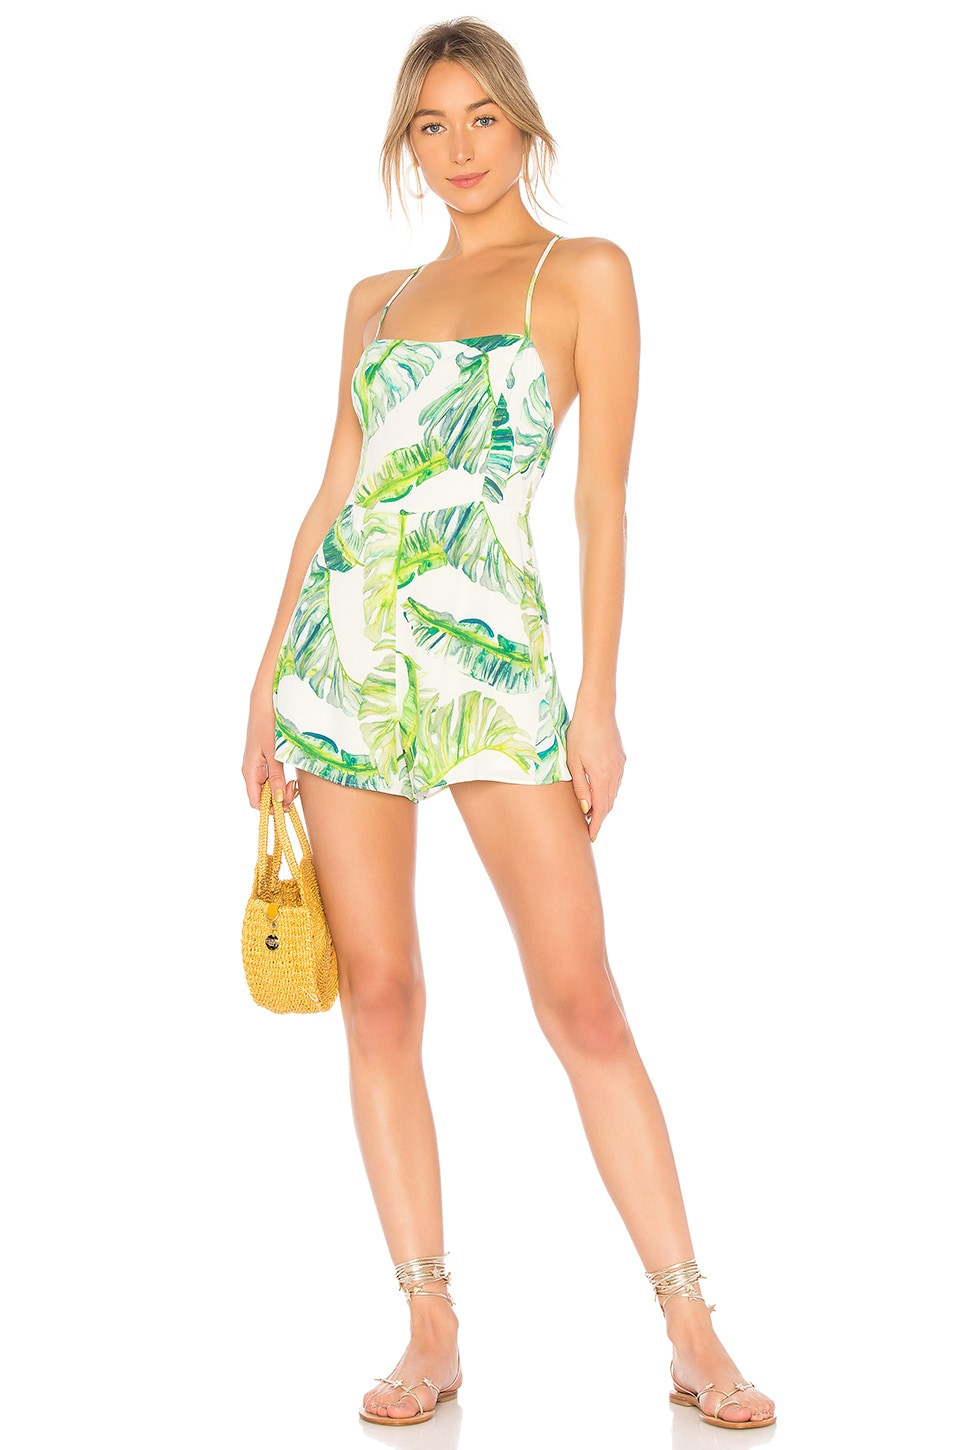 Privacy Please Benfield Romper in Green Palm